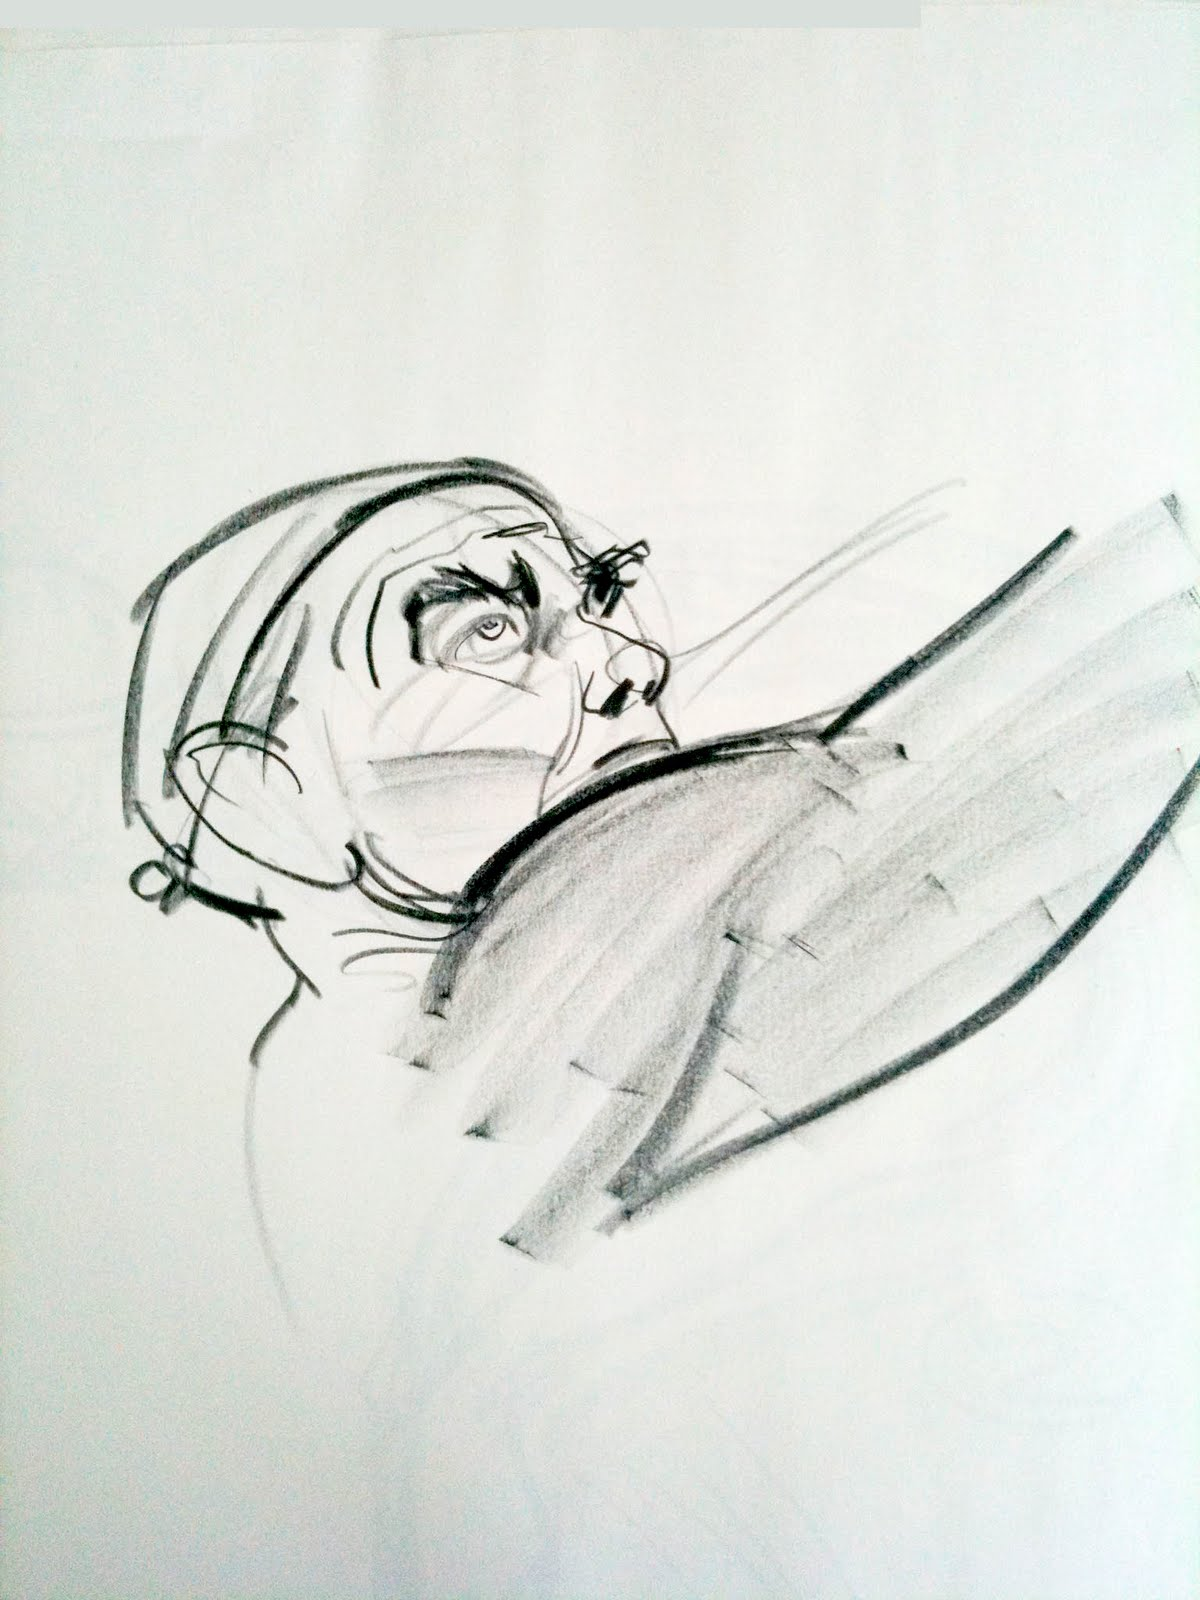 Force Character Design From Life Drawing By Mike Mattesi : Forced by mike mattesi some more short duration figure